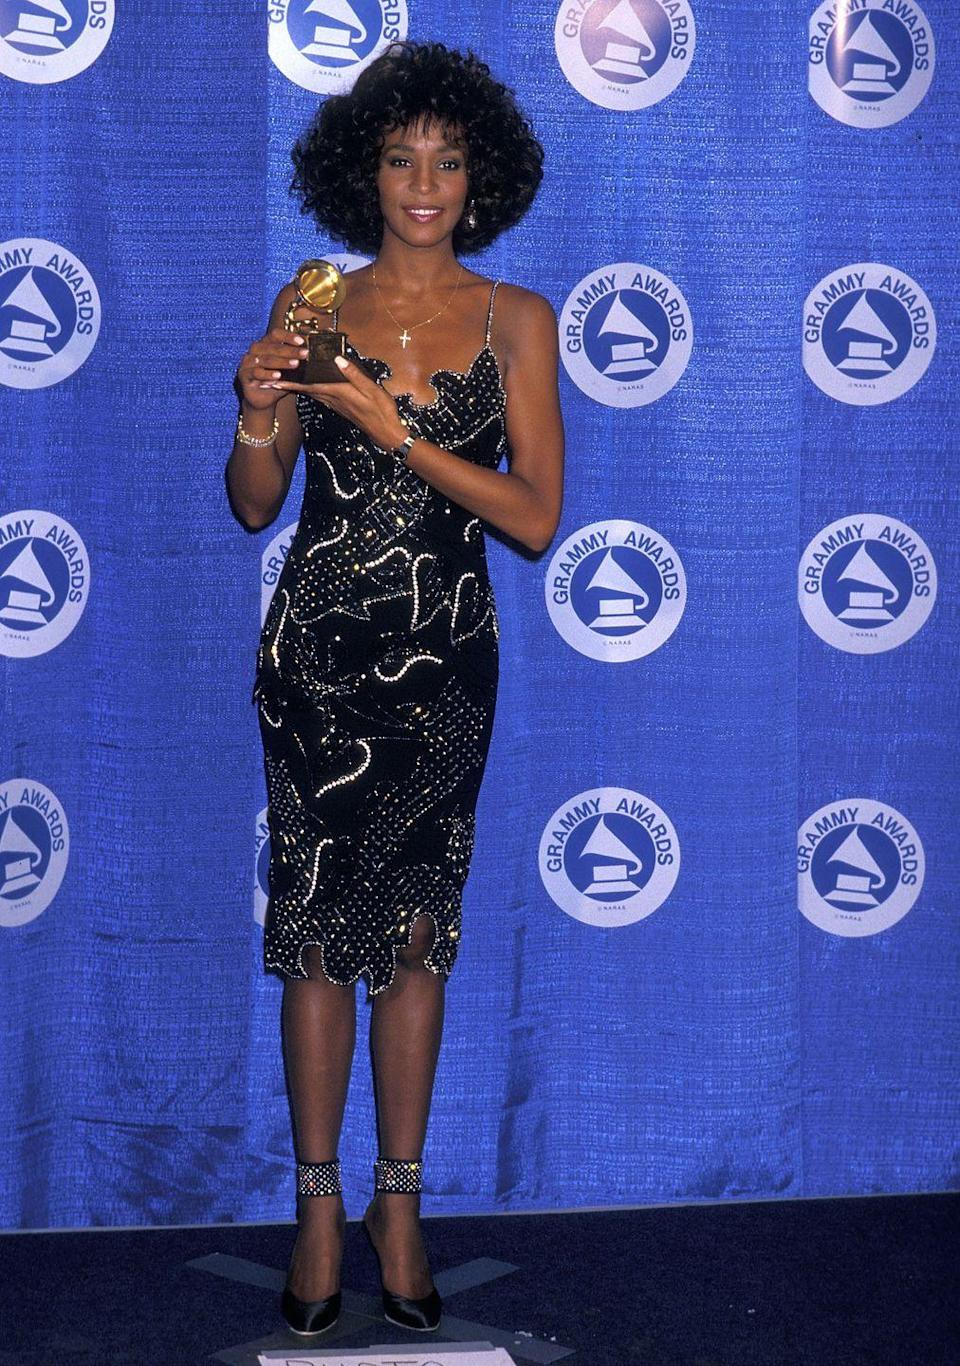 <p>The '80s were all about head-to-toe embellished looks, and Whitney Houston's rhinestone-studded ankle-strap shoes perfectly coordinated with her glittery Grammys ensemble. </p>